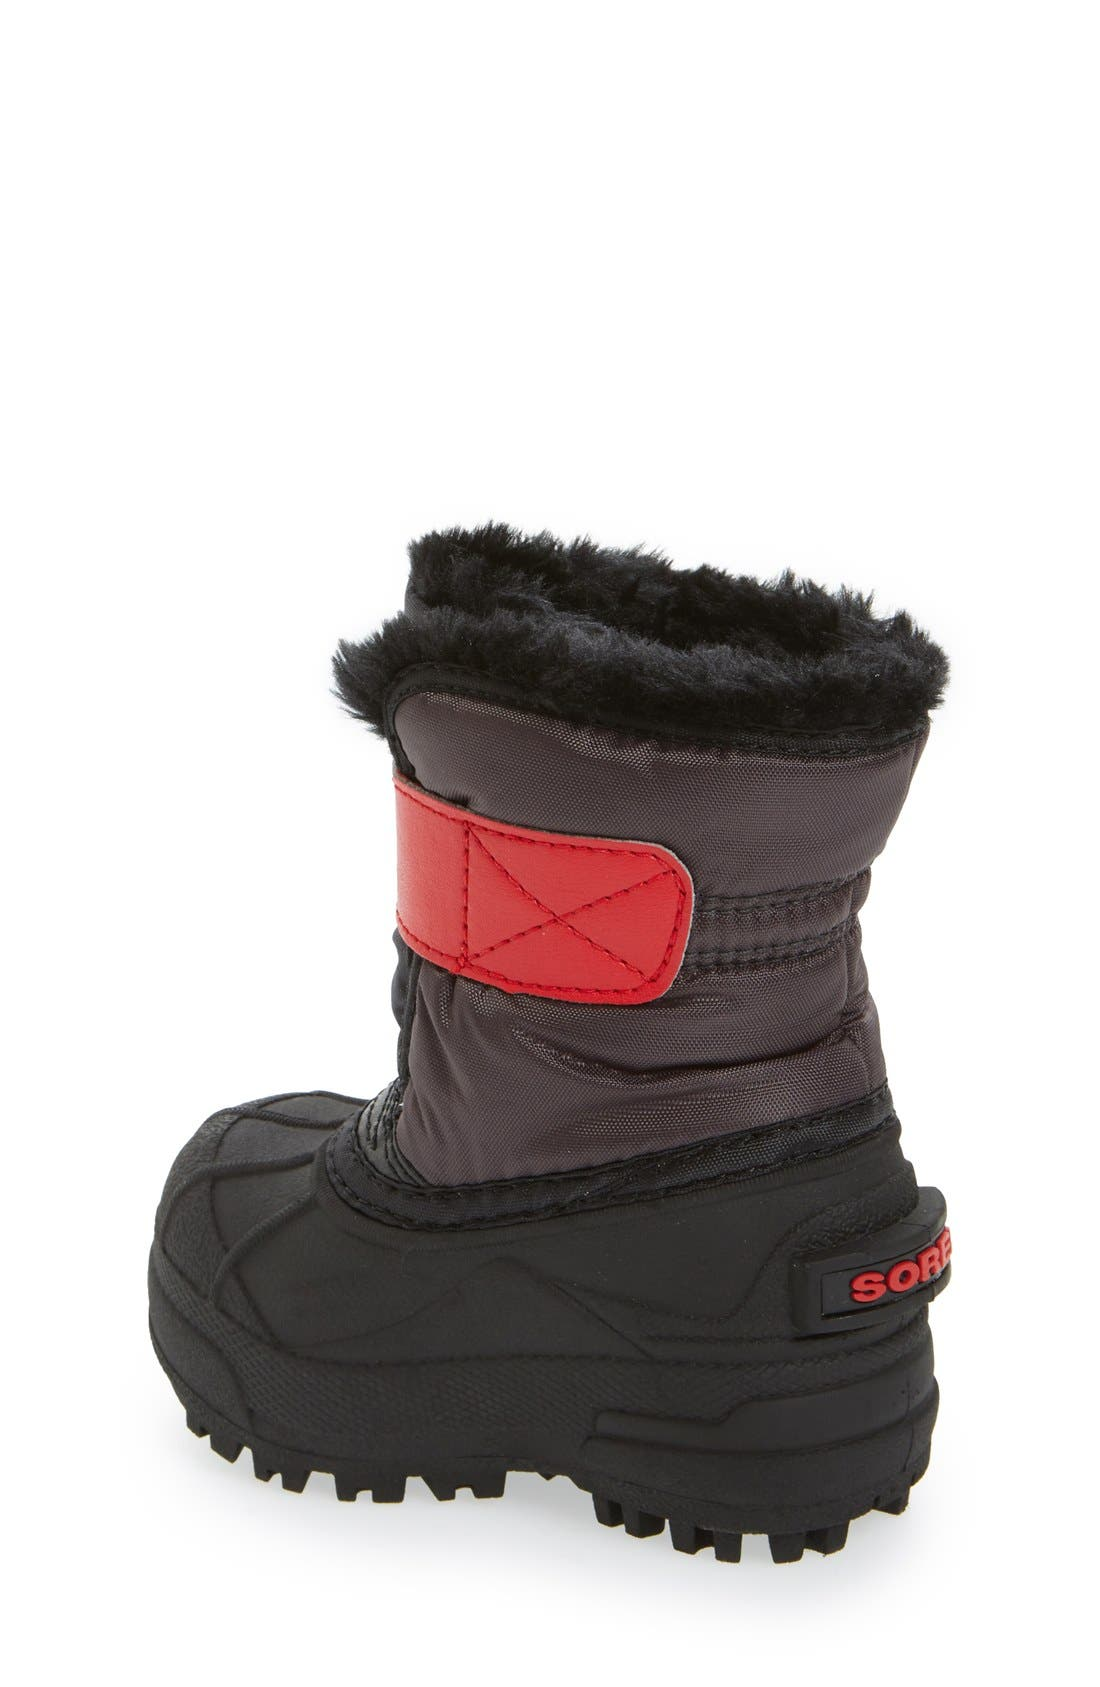 'Snow Commander' Boot,                             Alternate thumbnail 3, color,                             DARK GREY/ BRIGHT RED